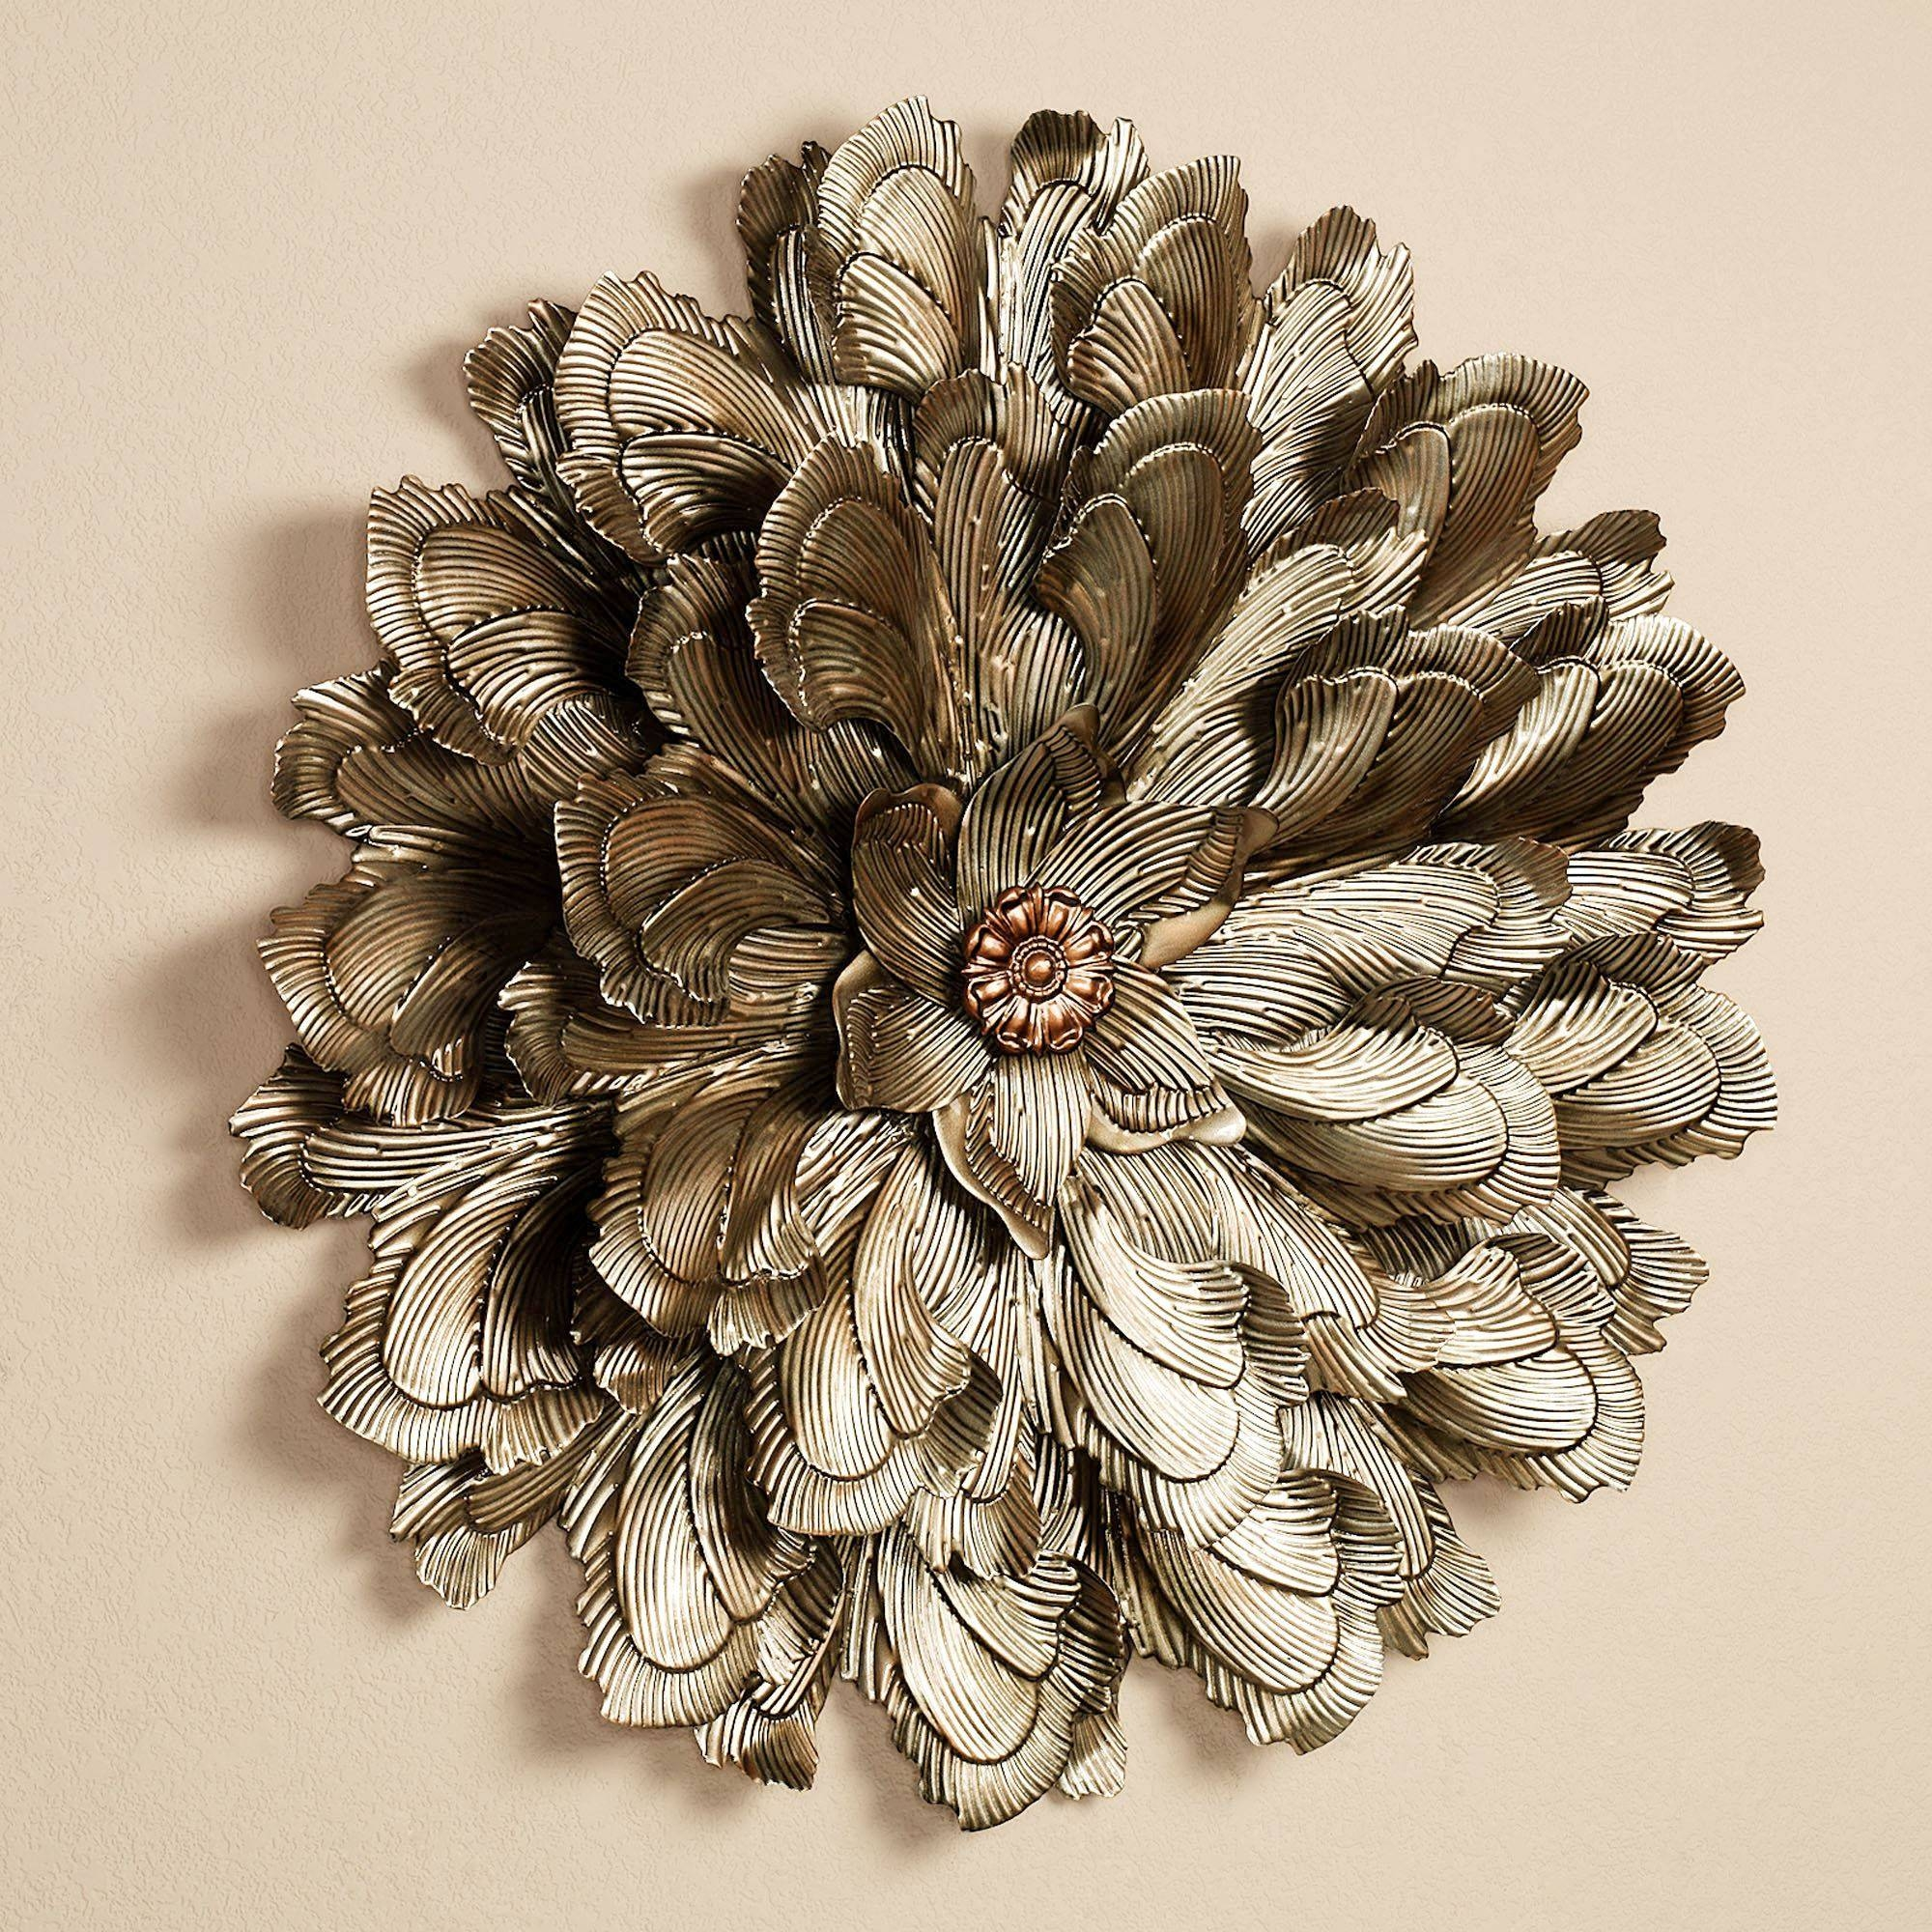 41 Silver Metal Wall Art Flowers, Home Metal Wall Art Wall Decor Intended For Most Popular Metal Wall Art Flowers (Gallery 3 of 20)